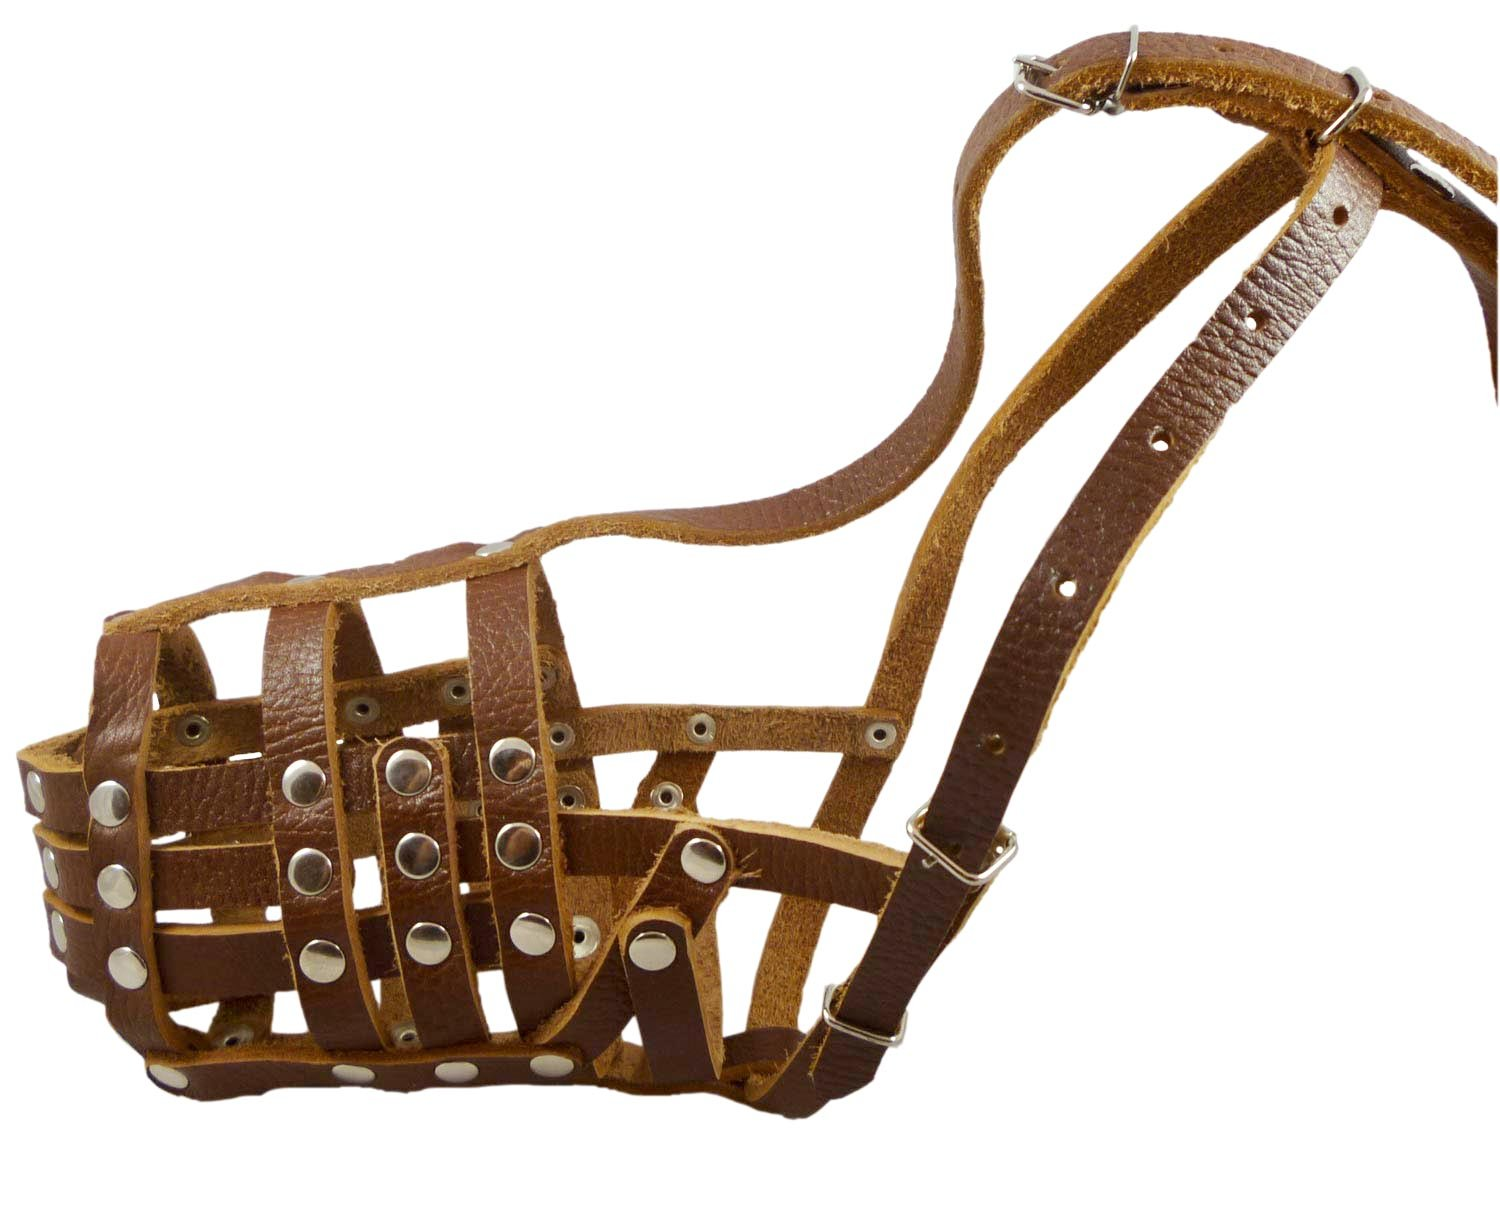 Secure Leather Mesh Basket Dog Muzzle #12 Brown - Doberman, Collie (Circumference 11.5'', Snout Length 5'')